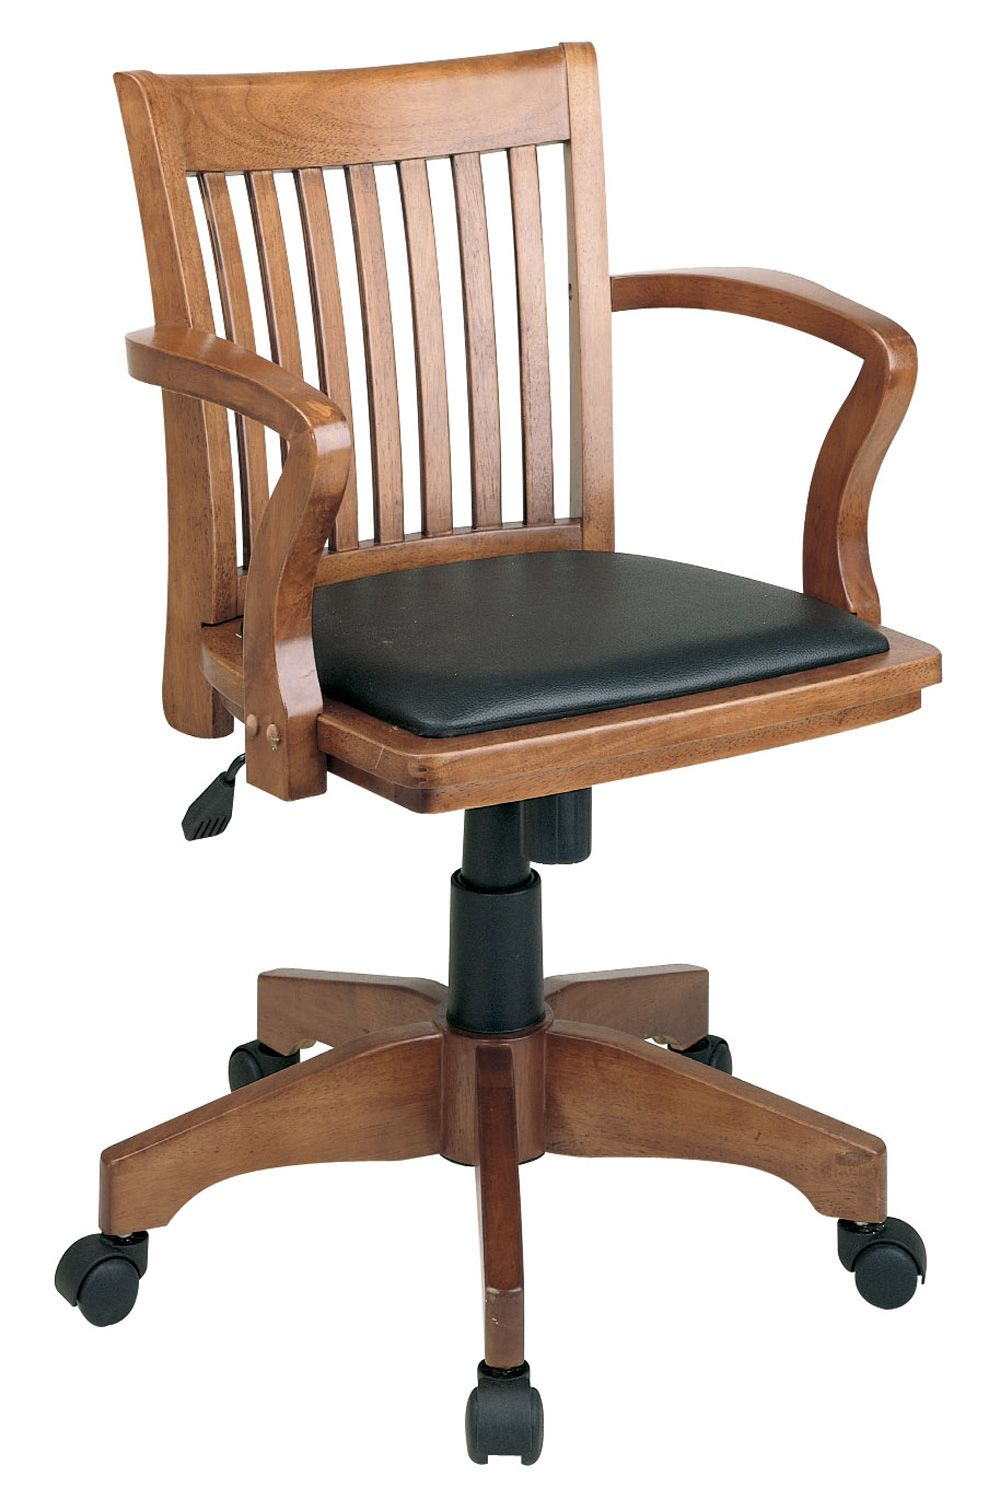 deluxe wooden home office. OSP Designs Deluxe Wood Banker\u0027s Chair With Black Vinyl Padded Seat - Fruitwood By Office Star Products Wooden Home S